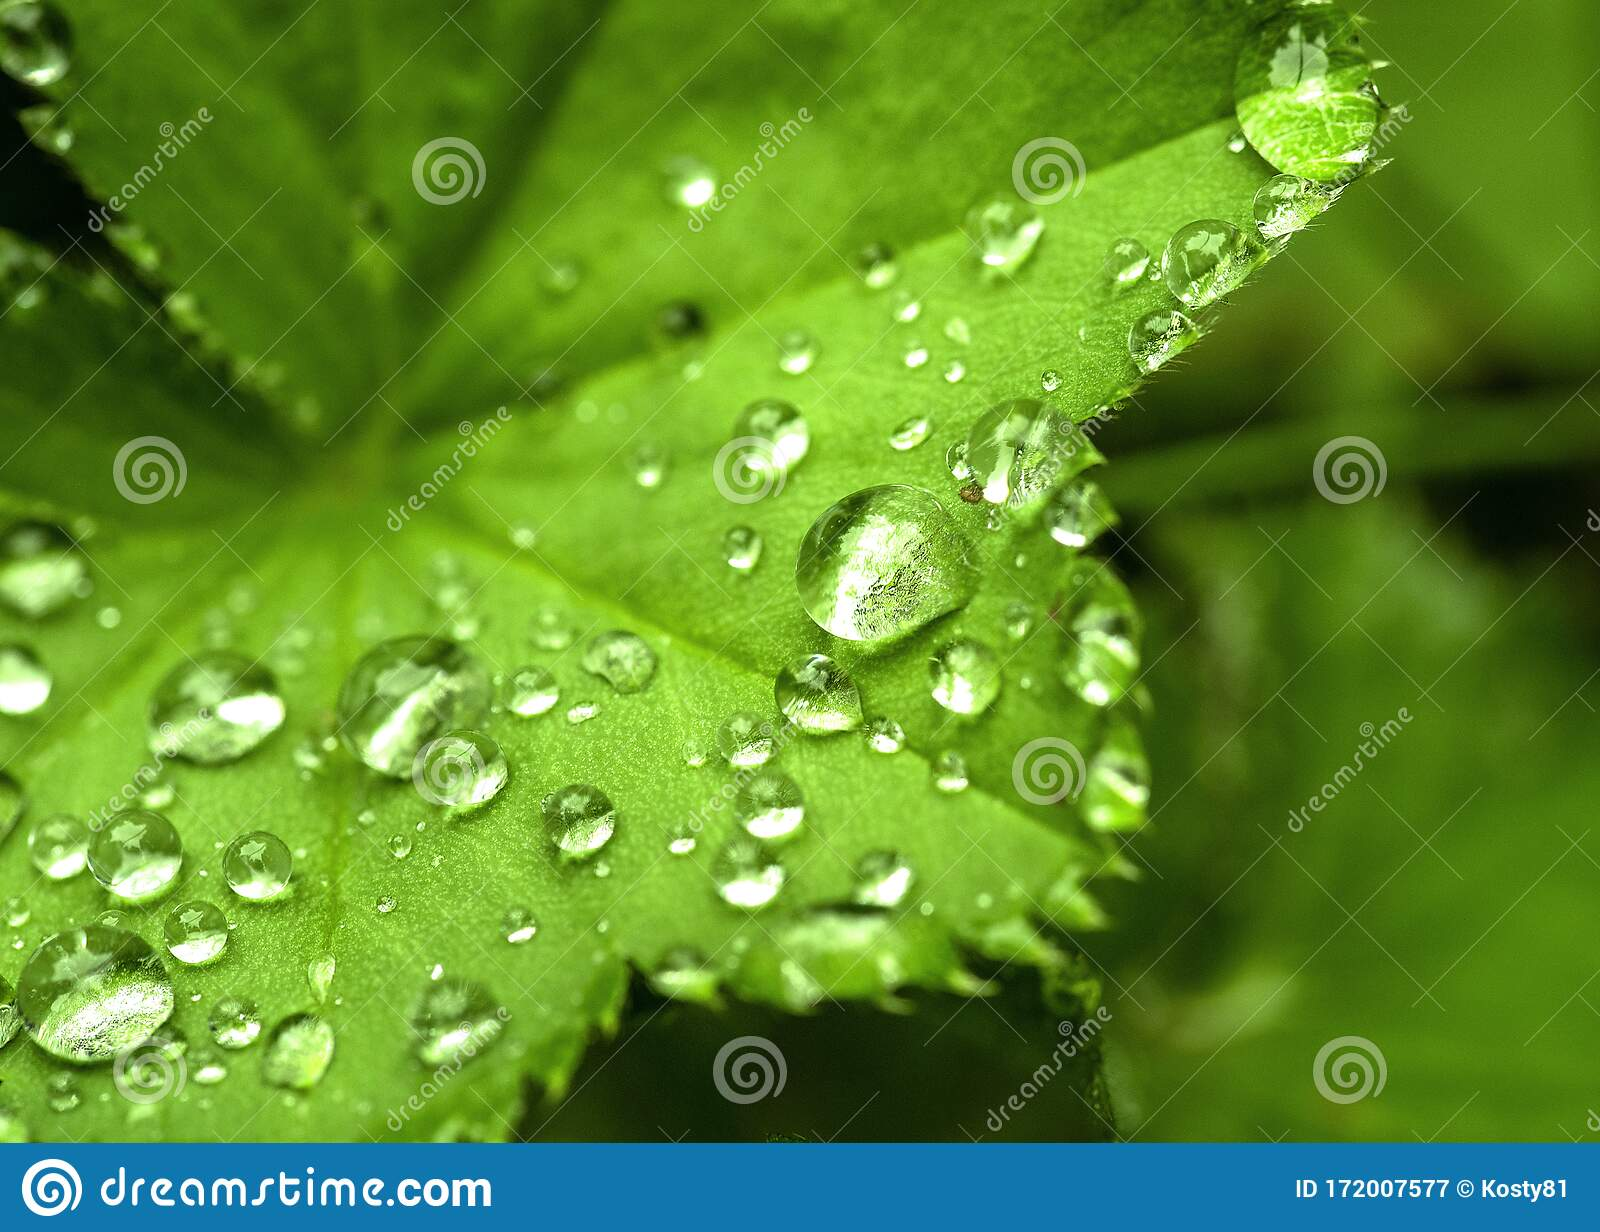 Beautiful Nature Background Morning Dew Drops Macro Natural Photography Stock Image Image Of Morning Photography 172007577